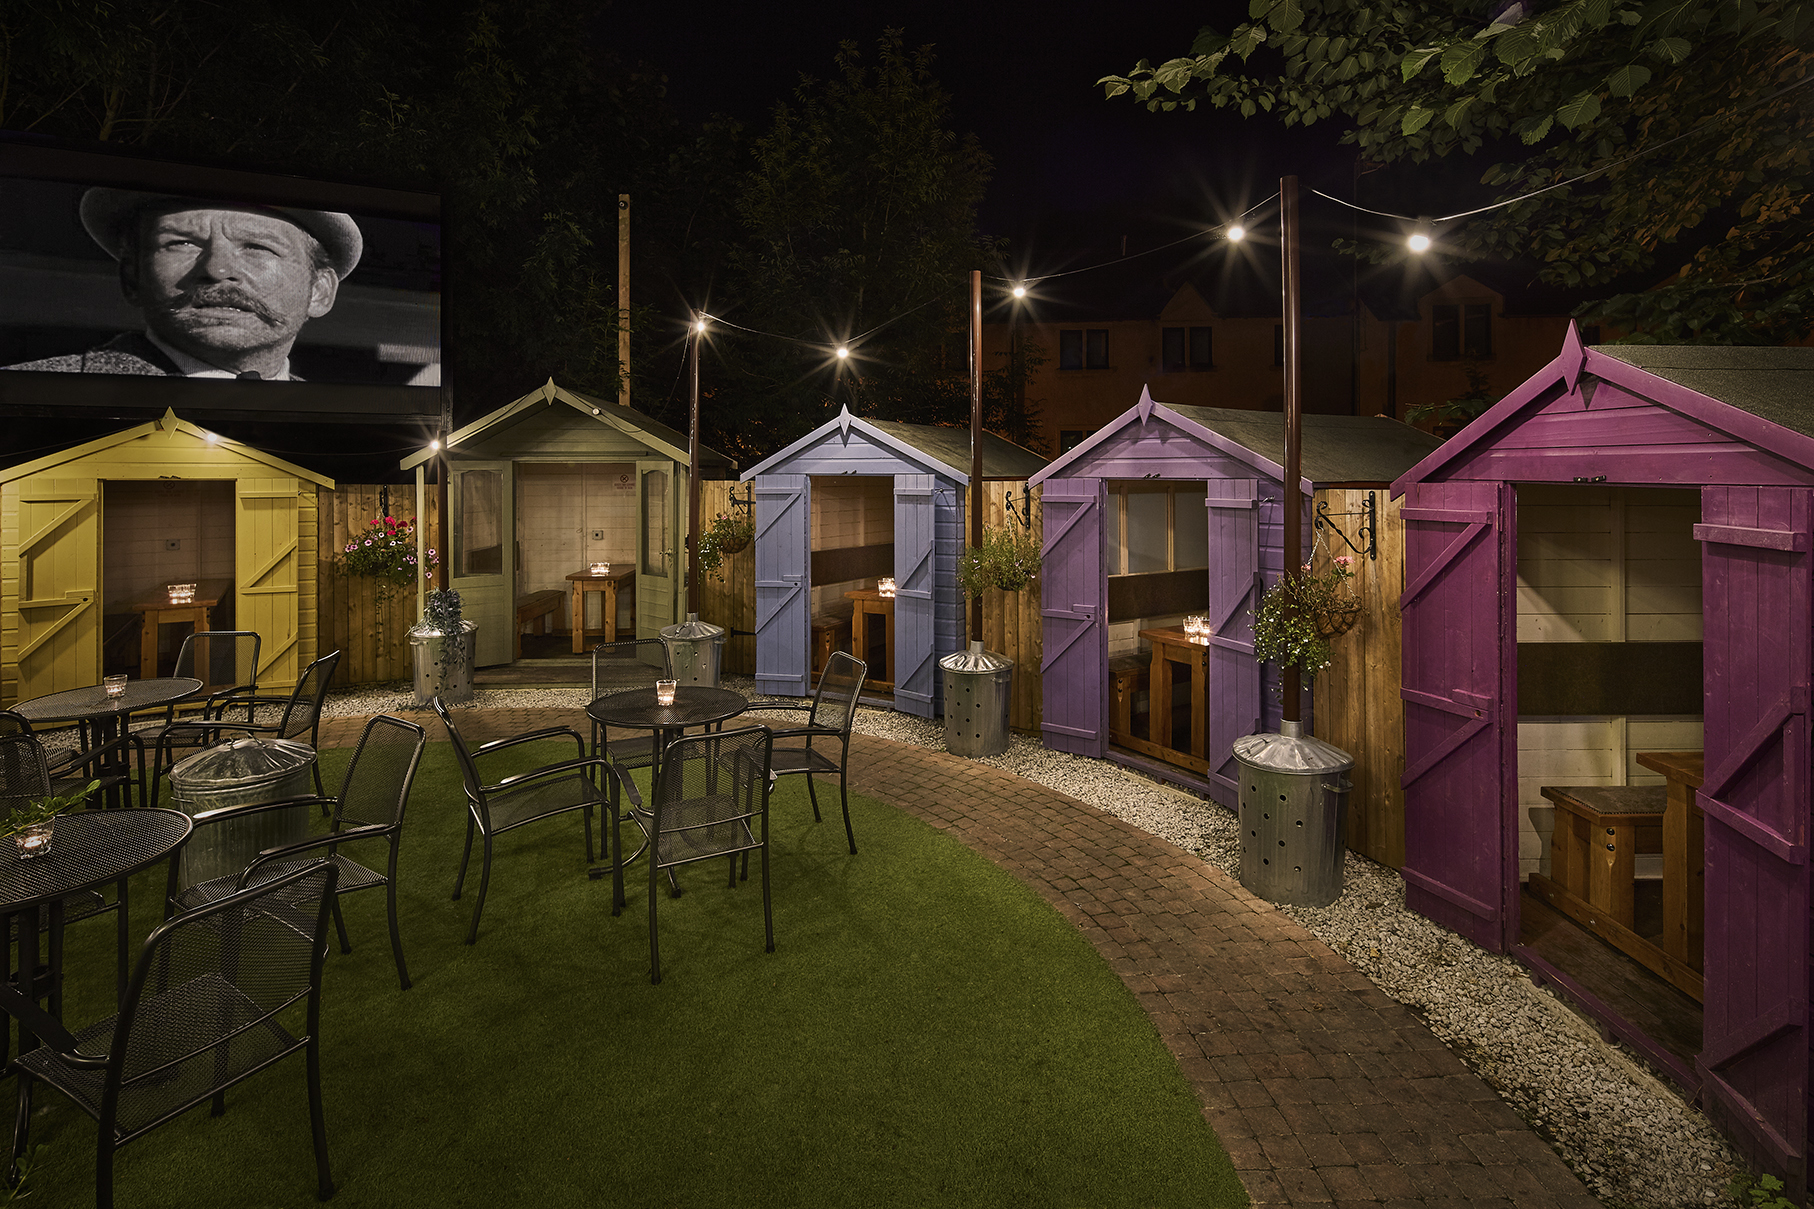 PUB OF THE WEEK: Socially distanced huts and rooftop dining at The Potting Shed